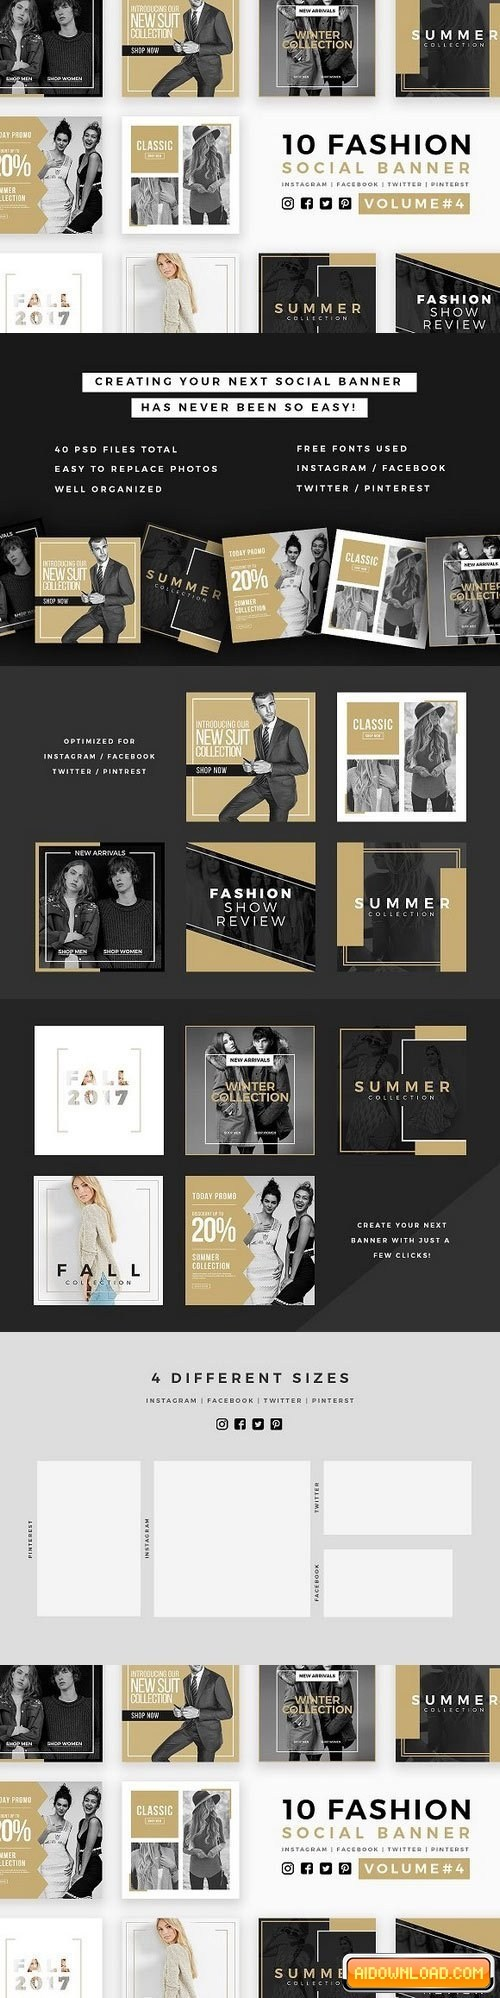 Fashion Social Banner Pack 4 Free Download | Free Graphic Templates ...